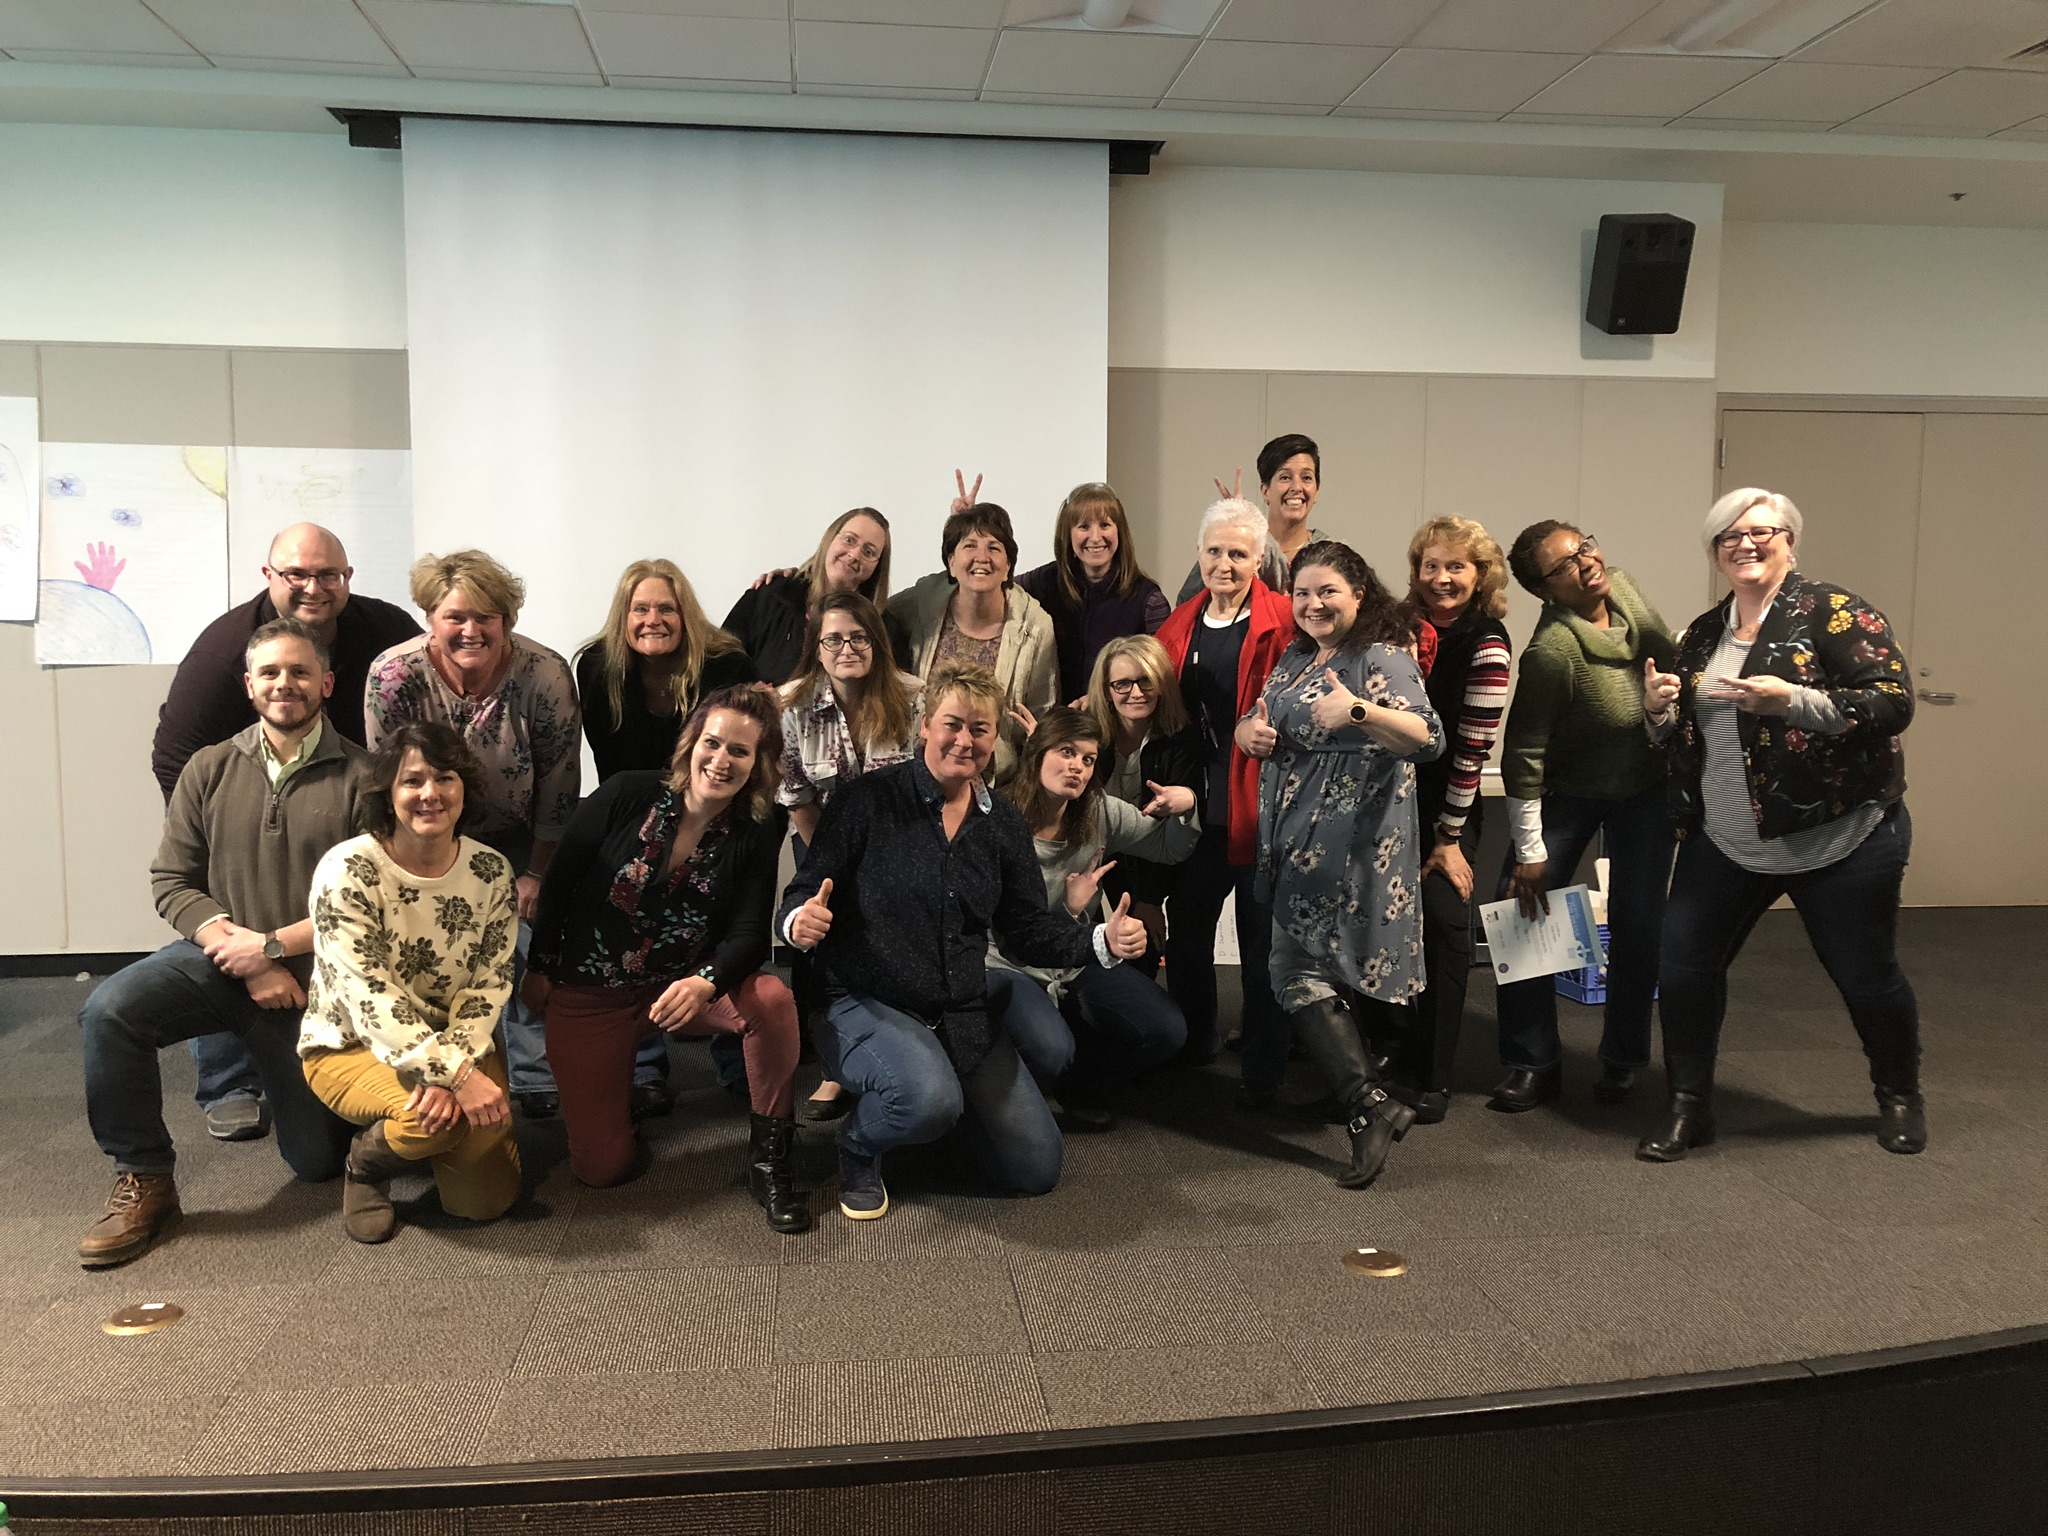 FCA MHFA Training Group Photo - 3/8/2019